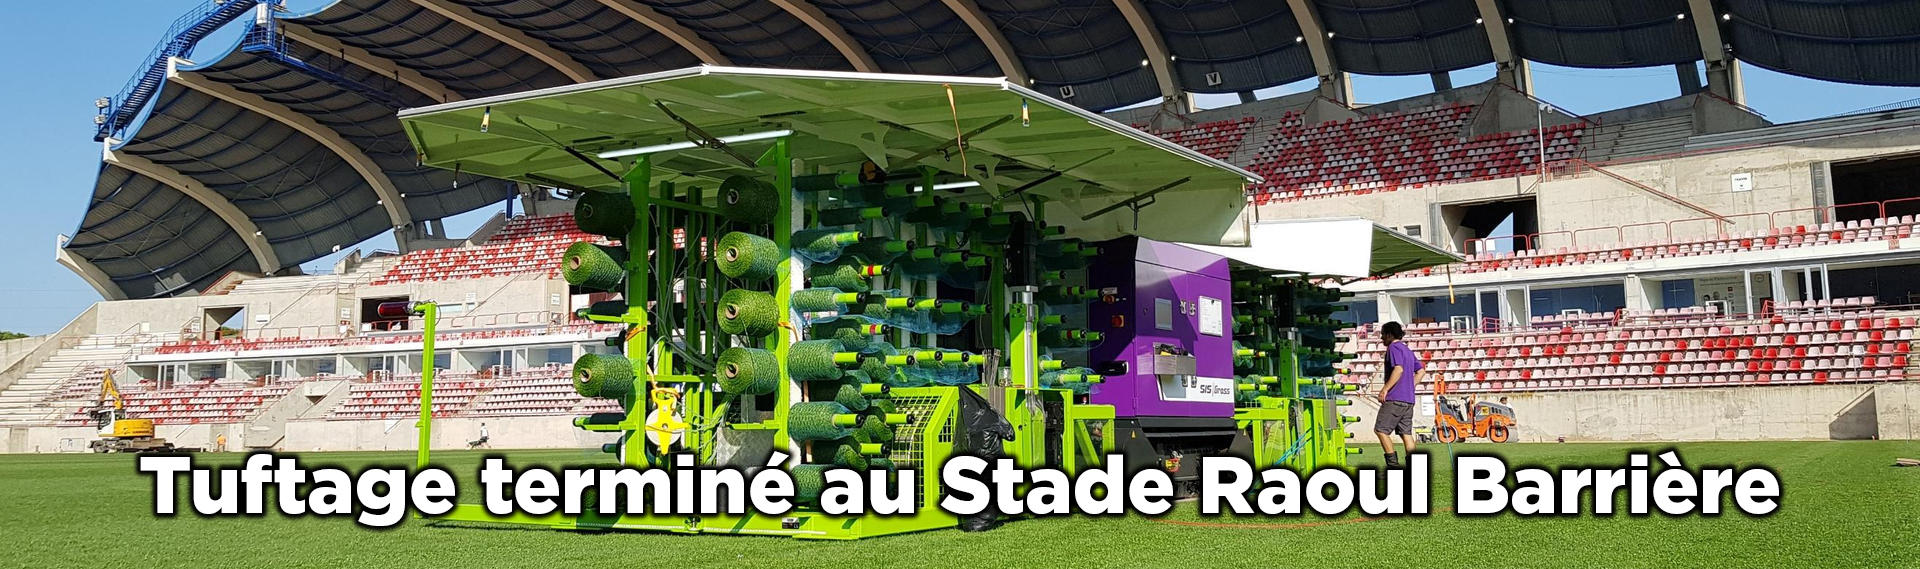 tuftage-stade-raoul-barriere